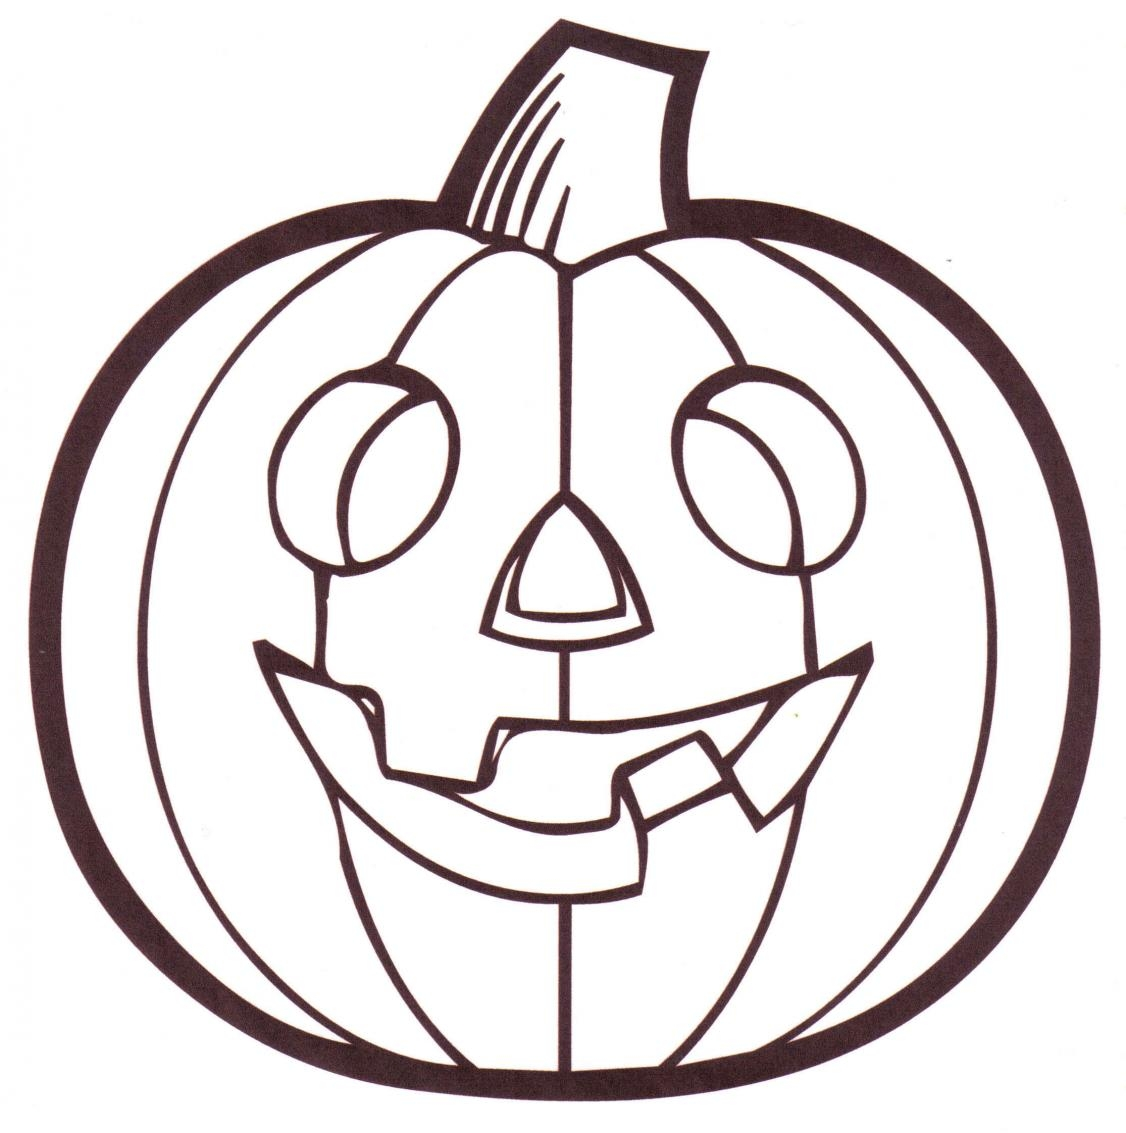 Pumpkin Coloring Pages - Free Printable Pumpkin Coloring Pages for Kids